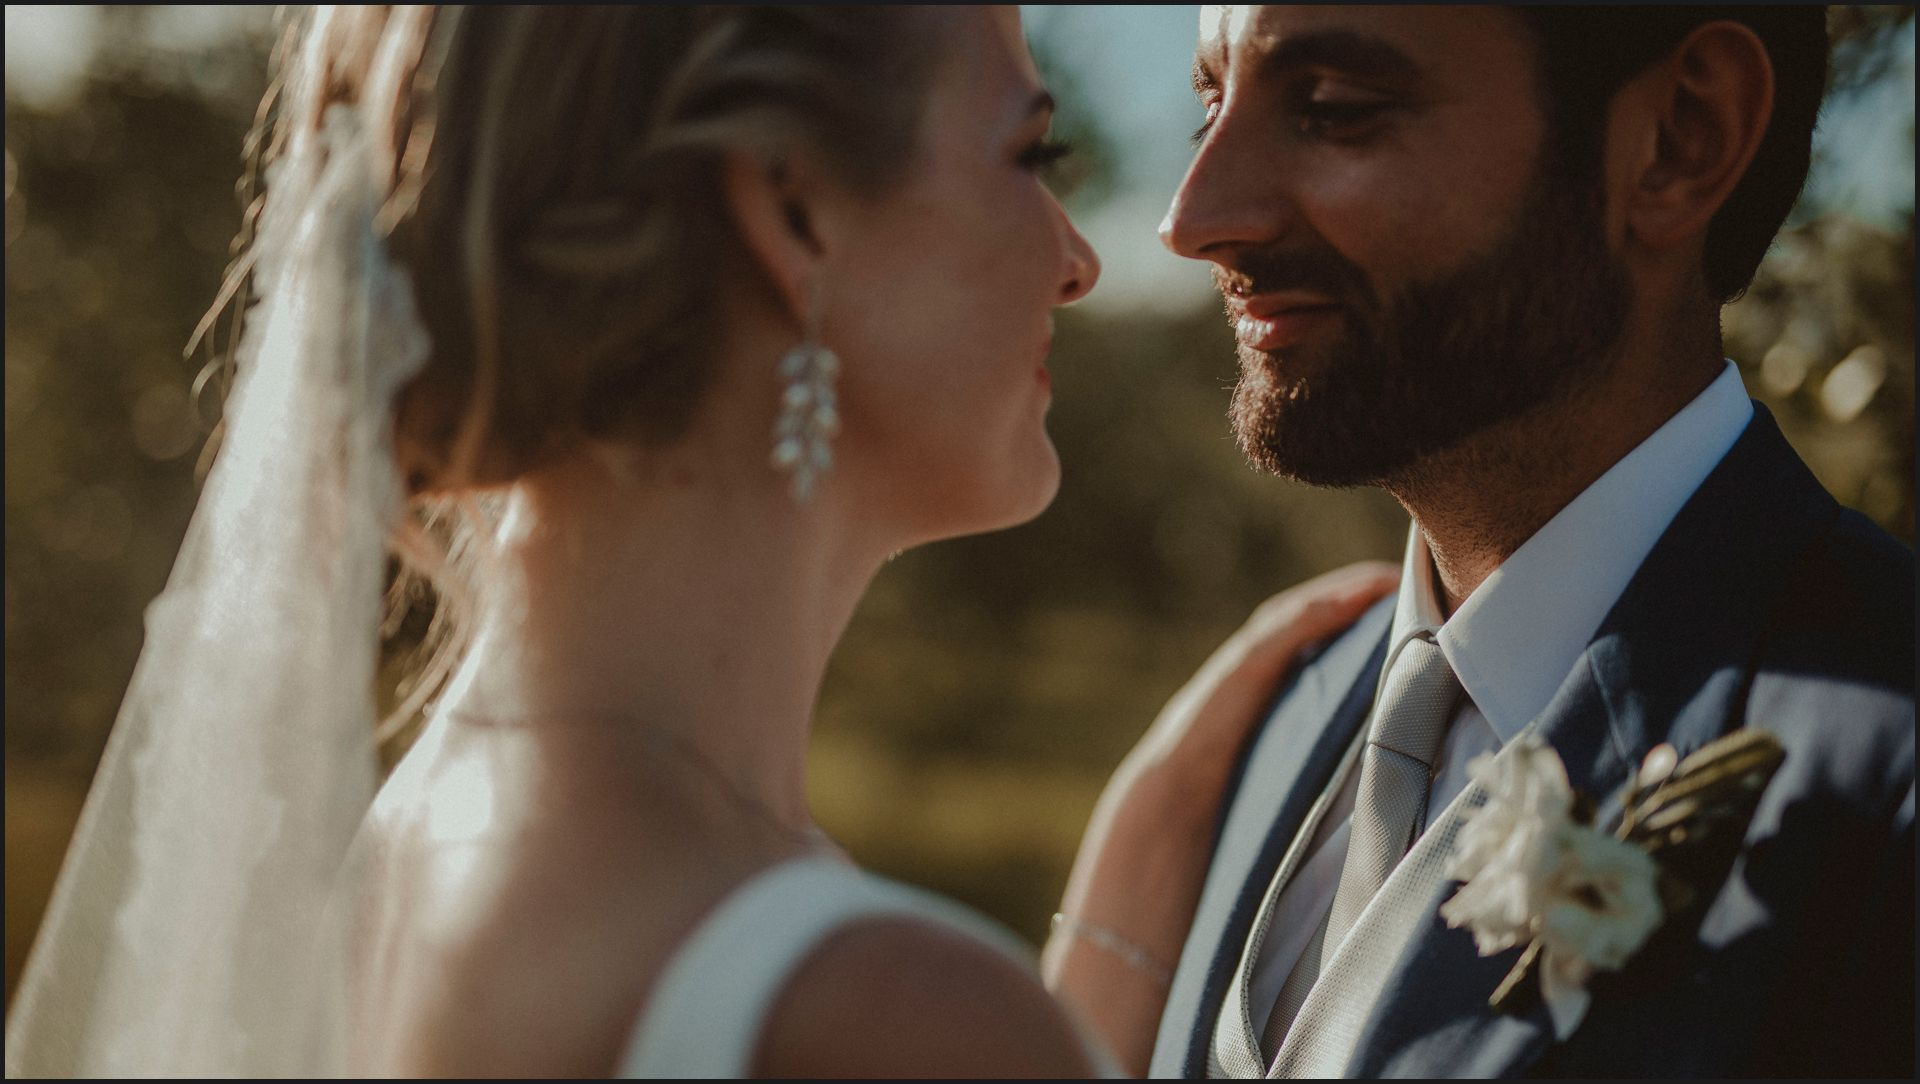 tenuta di canonica, umbria, wedding, bride, groom, love, intimate